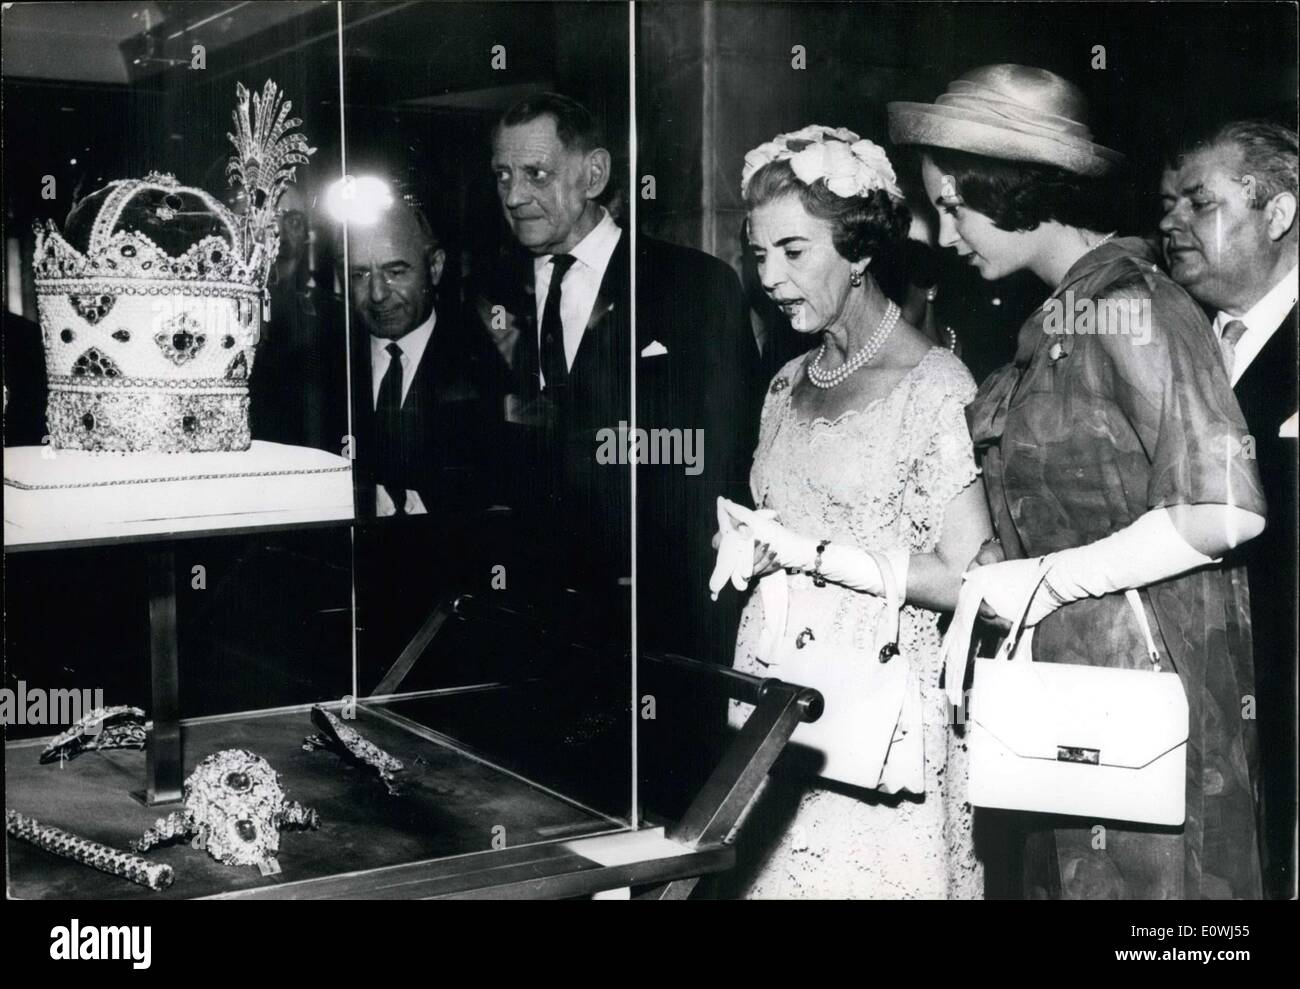 May 08, 1963 - Denmark's King Frederik, Queen Ingrid, and Princess Benedikte are seen here looking at the imperial jewels of Iran during their visit with the Shah and Empress of Iran. - Stock Image